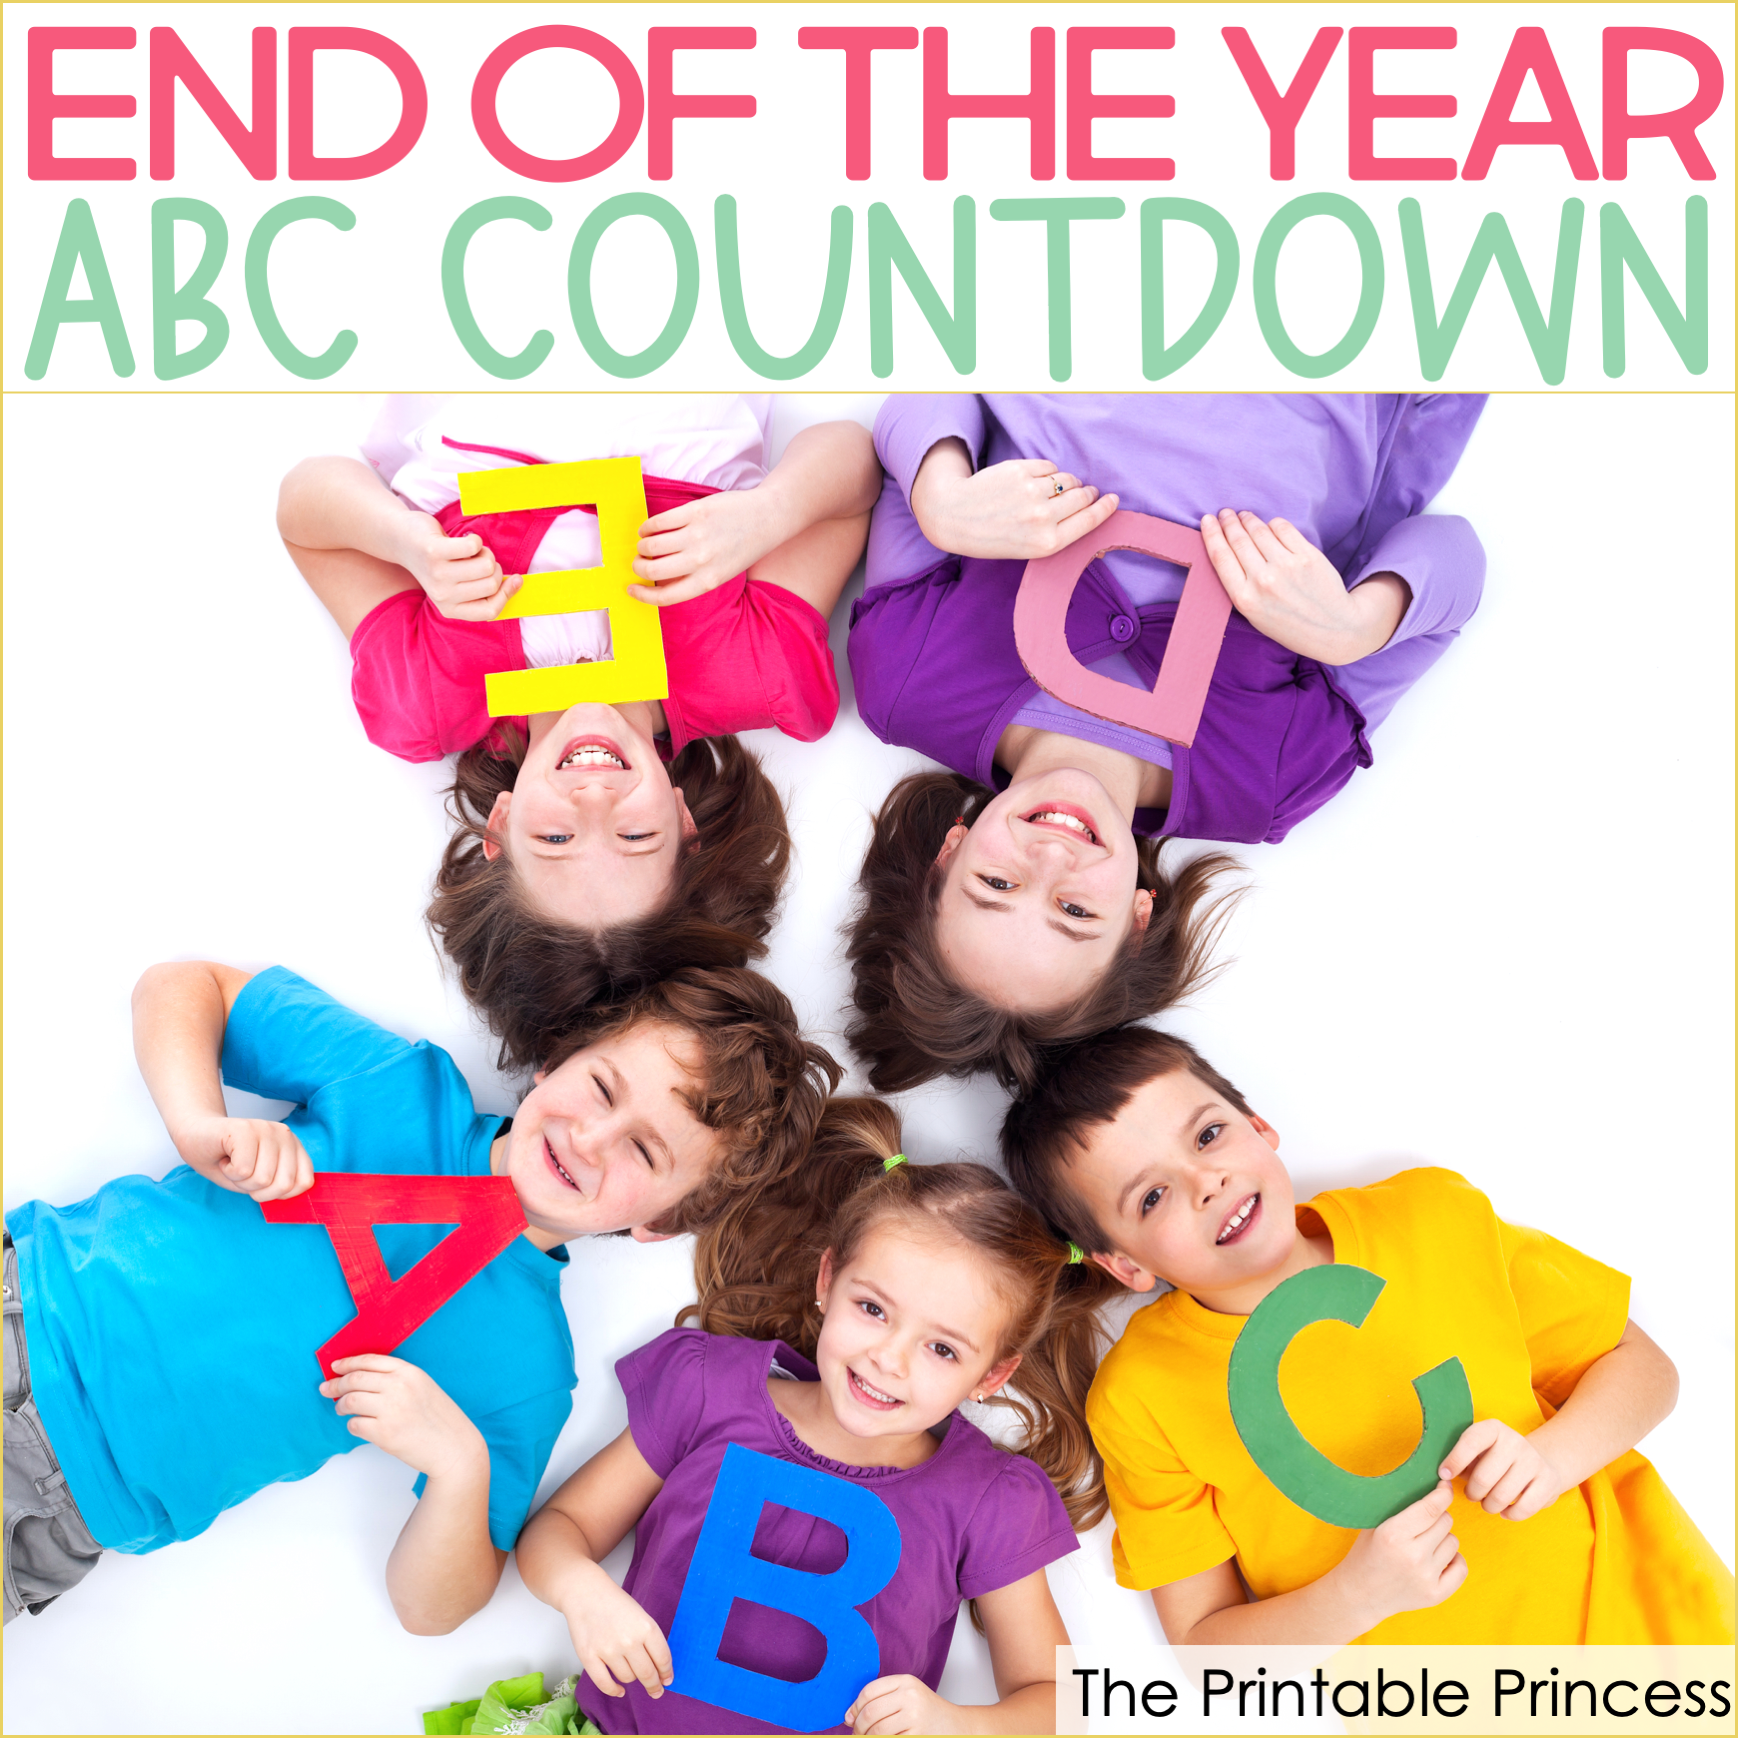 End of the Year ABC Countdown Ideas